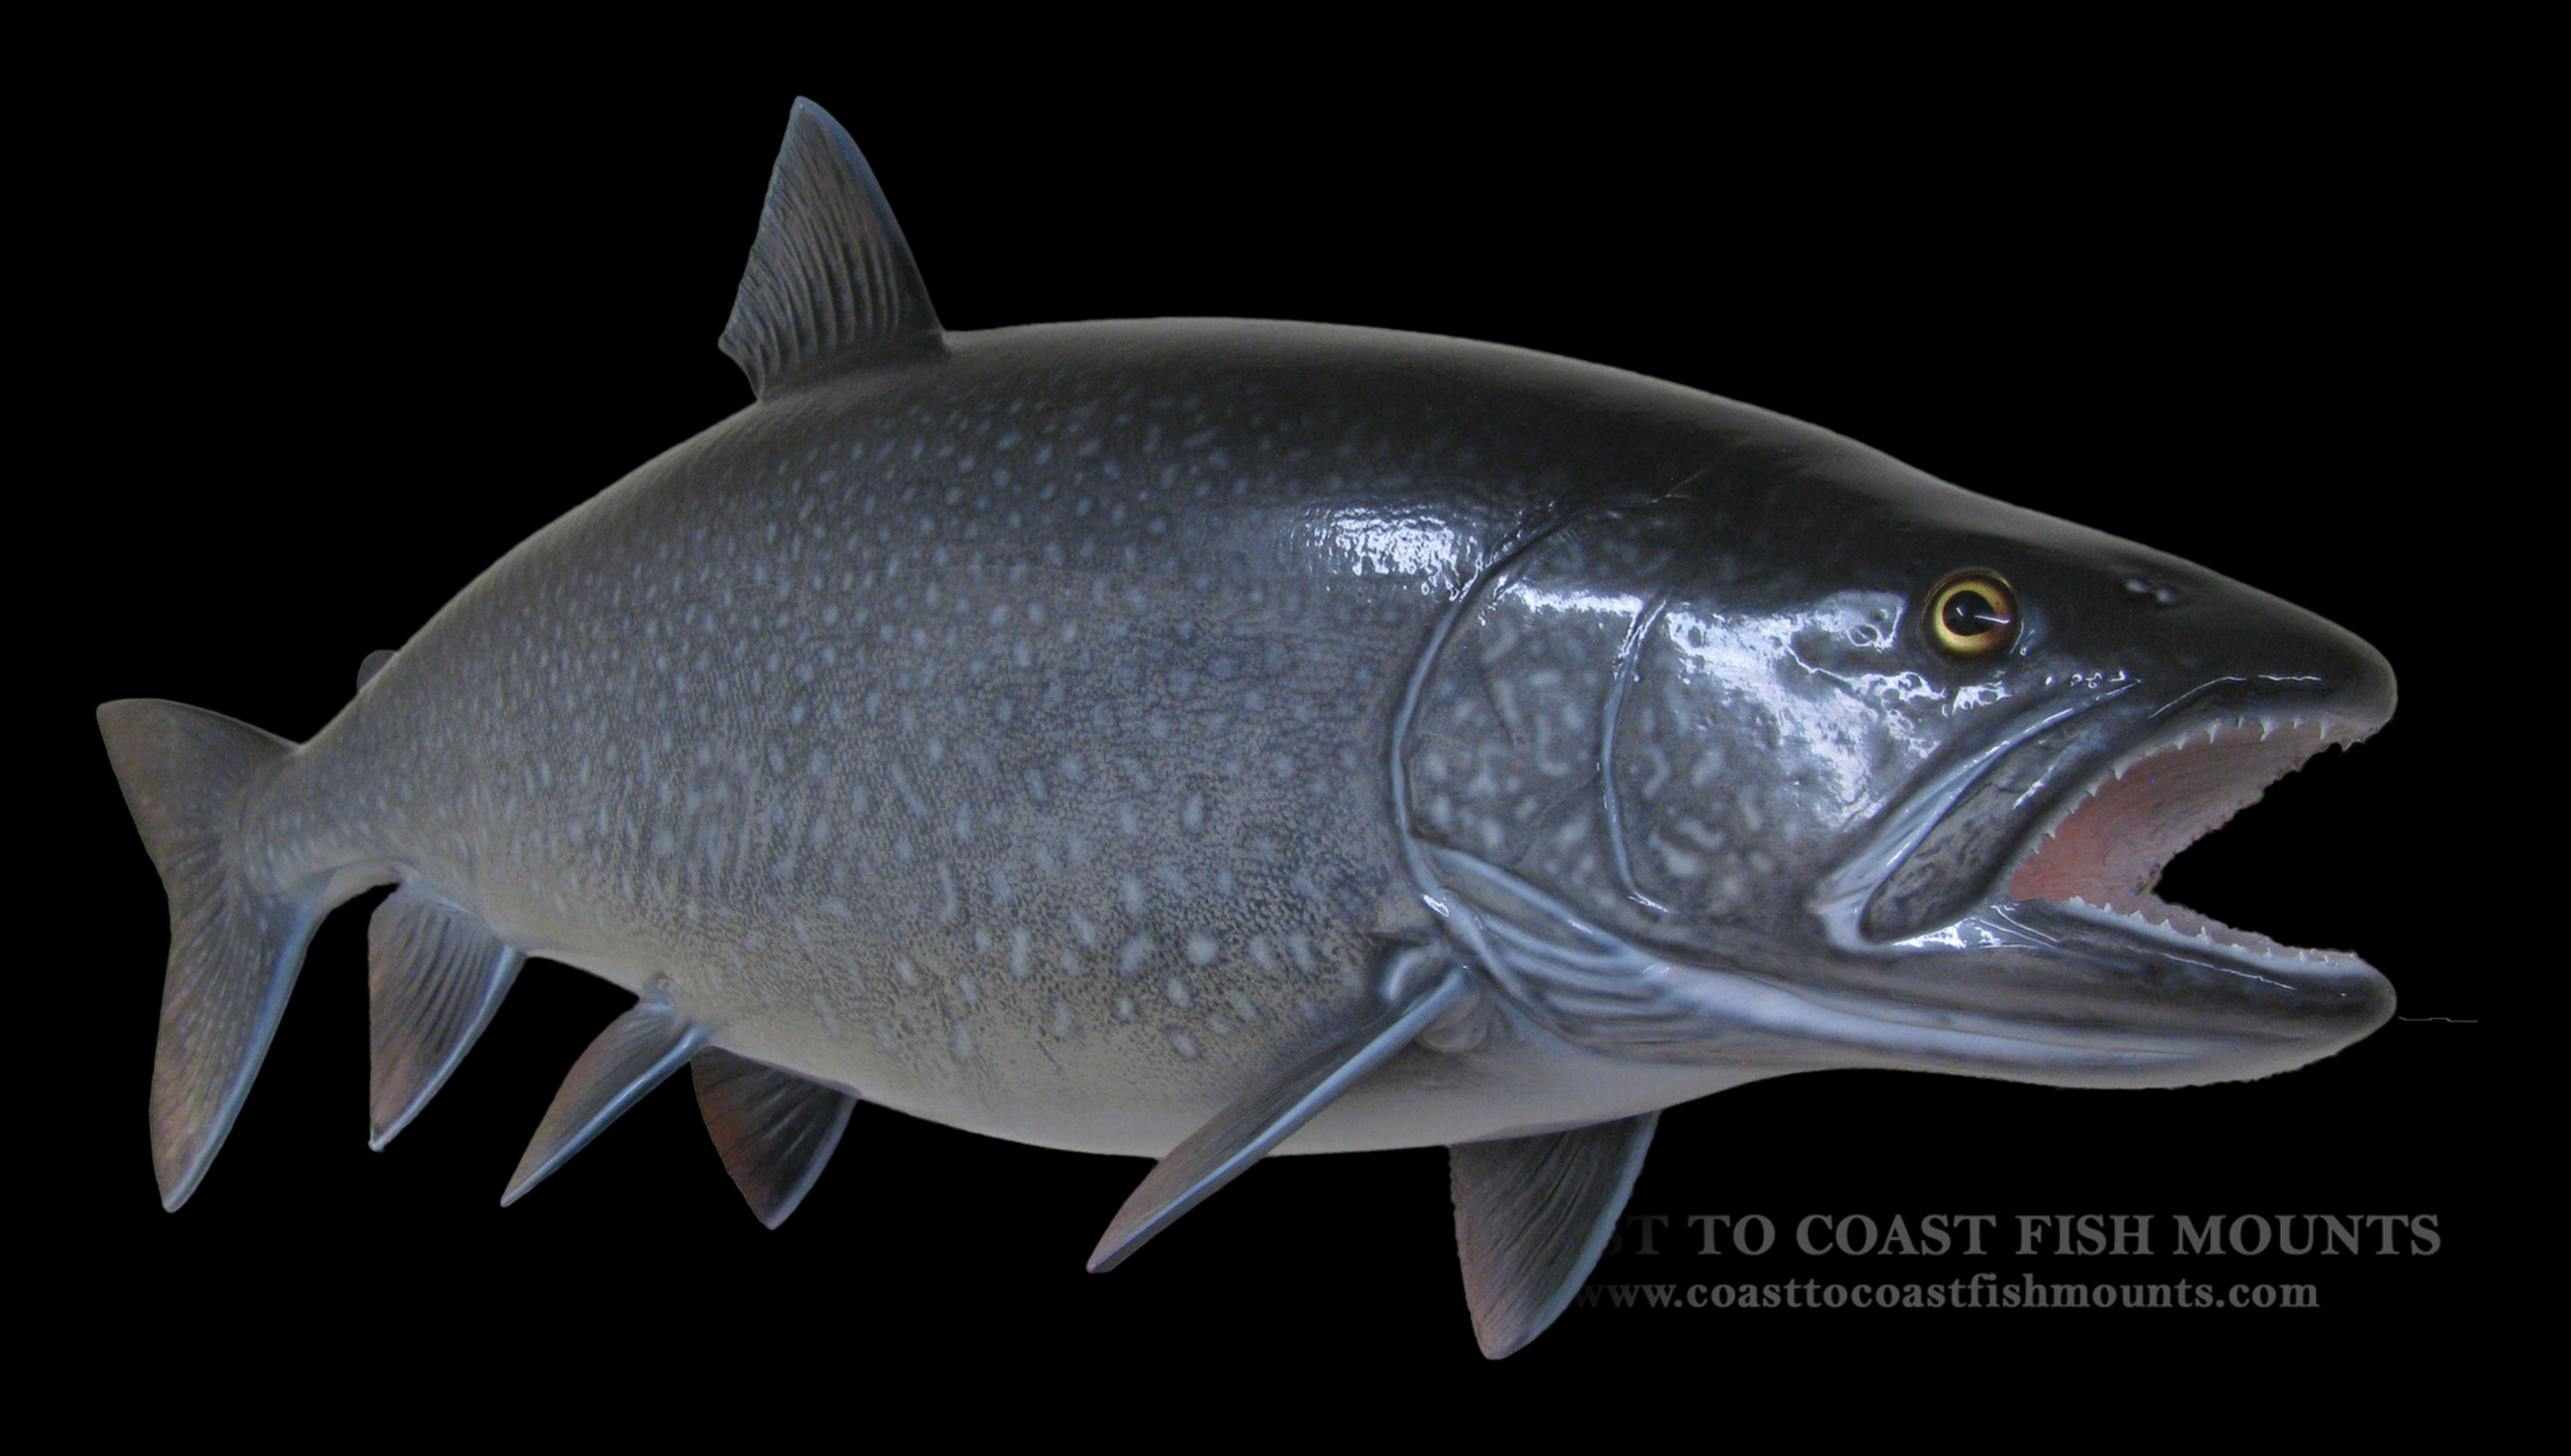 Lake trout fish mount and fish replicas coast to coast for Replica fish mounts